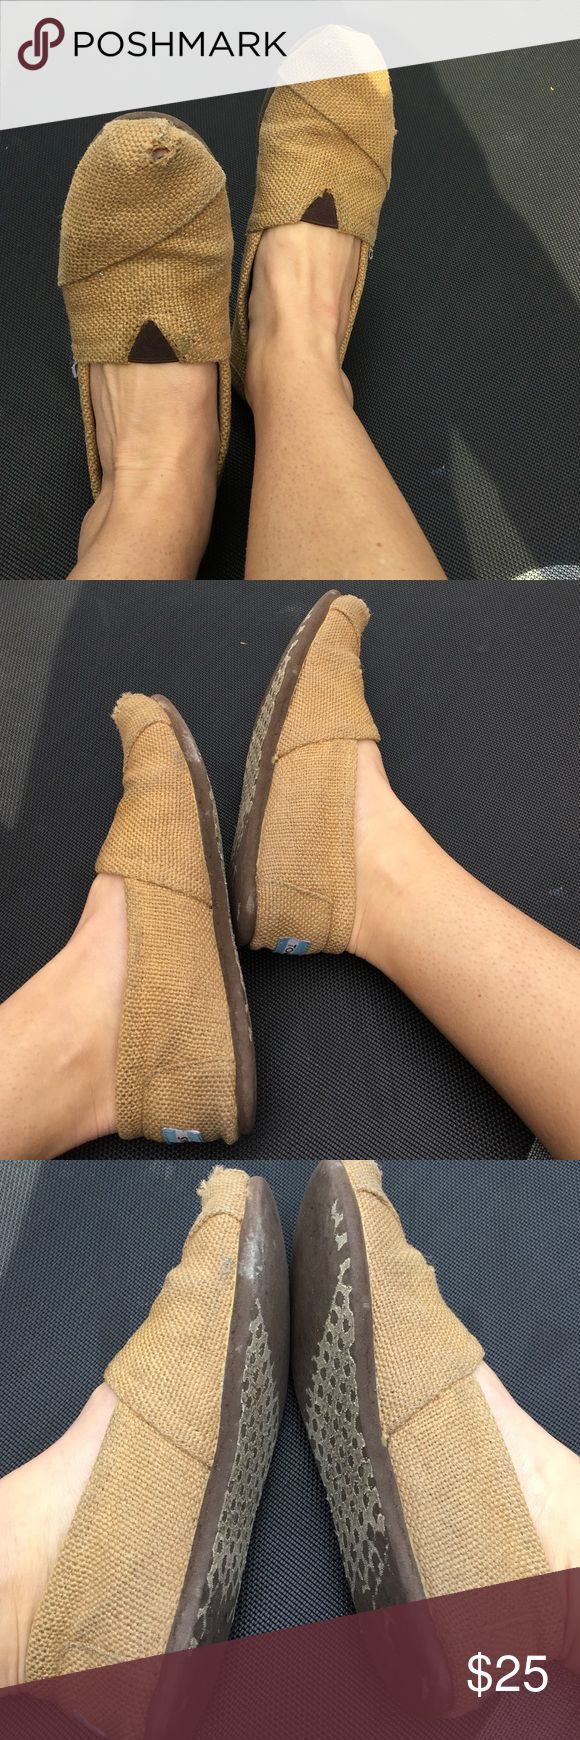 Very Worn Burlap TOMS. Size 7.5 Very , very worn burlap TOMS. Love these shoes. Does have holes at toe 😬 and very stretched out now. TOMS Shoes Sneakers